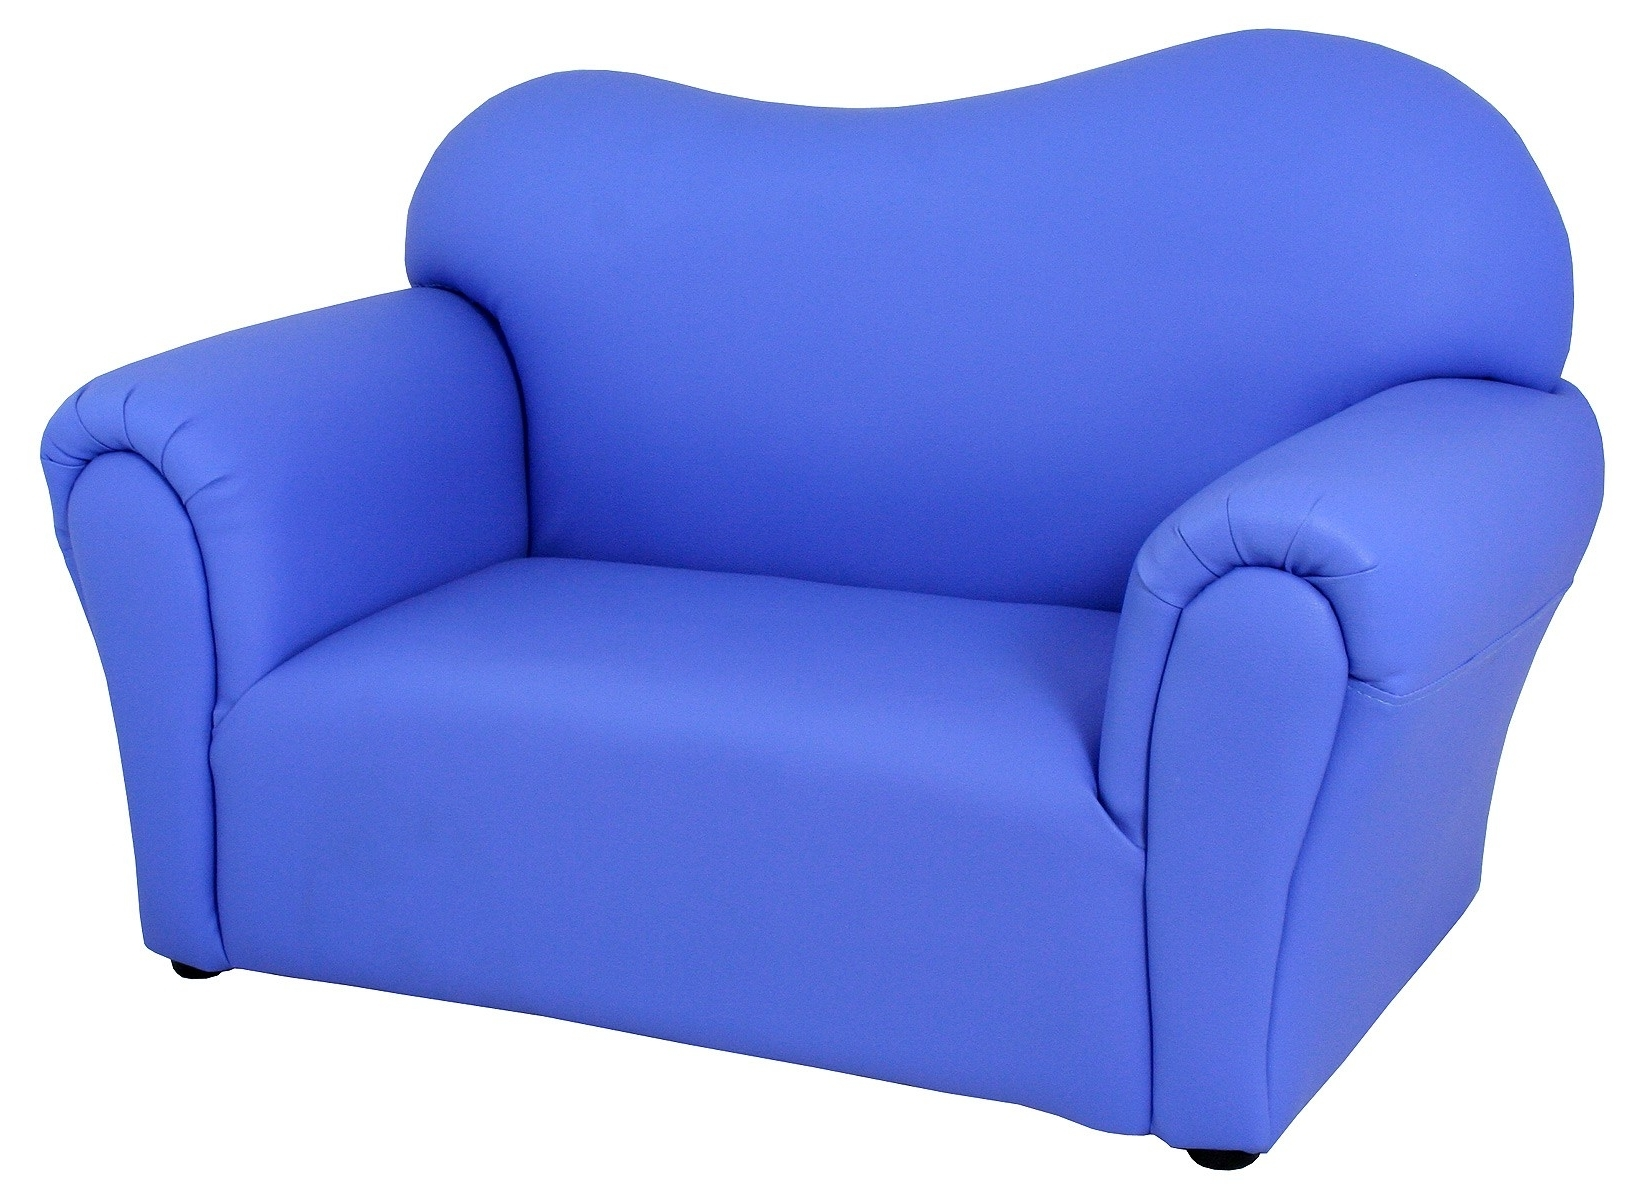 Mini Sofas With Most Popular Childrens Blue Mini Sofa – Be Fabulous! (View 9 of 20)